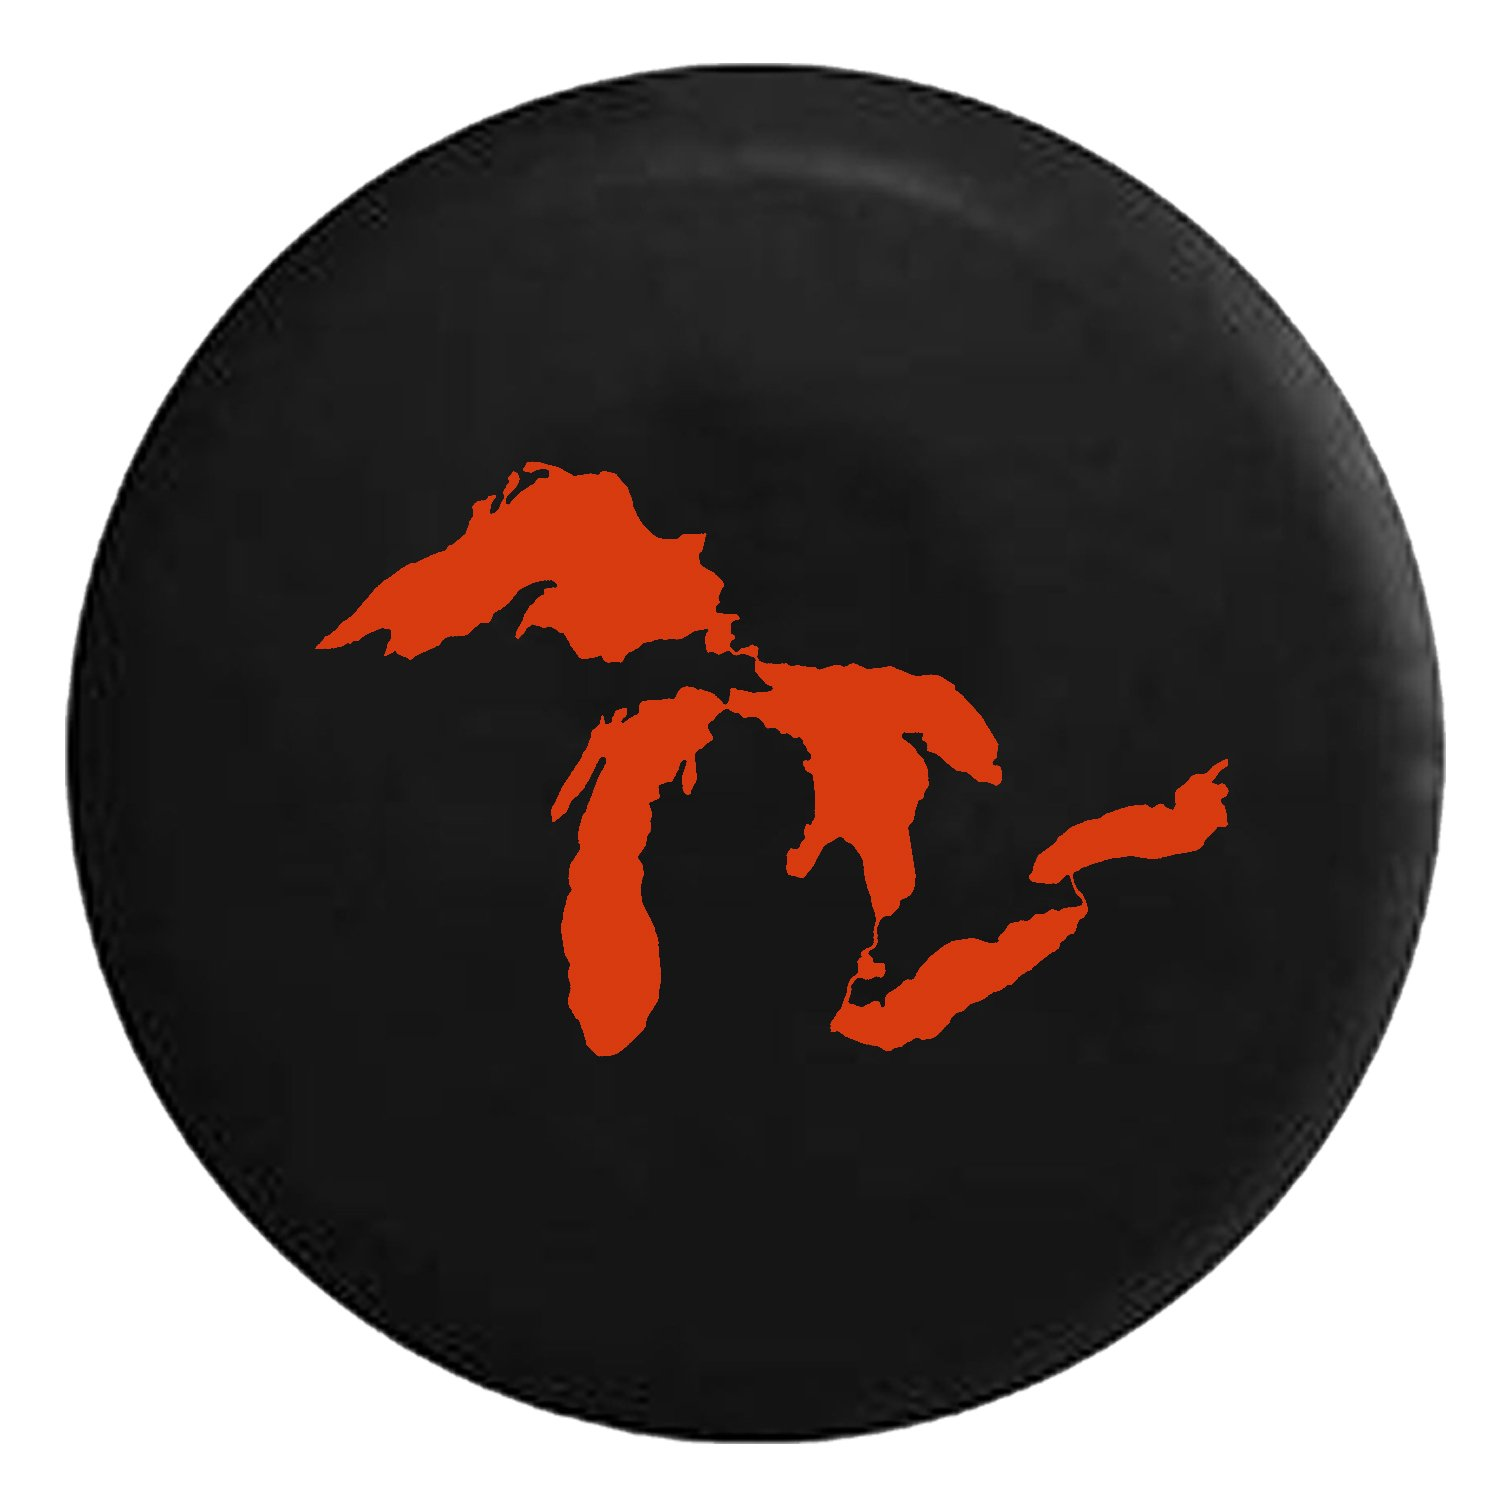 State of Michigan Great Lakes Spare Jeep Wrangler Camper SUV Tire Cover White Ink 35 in